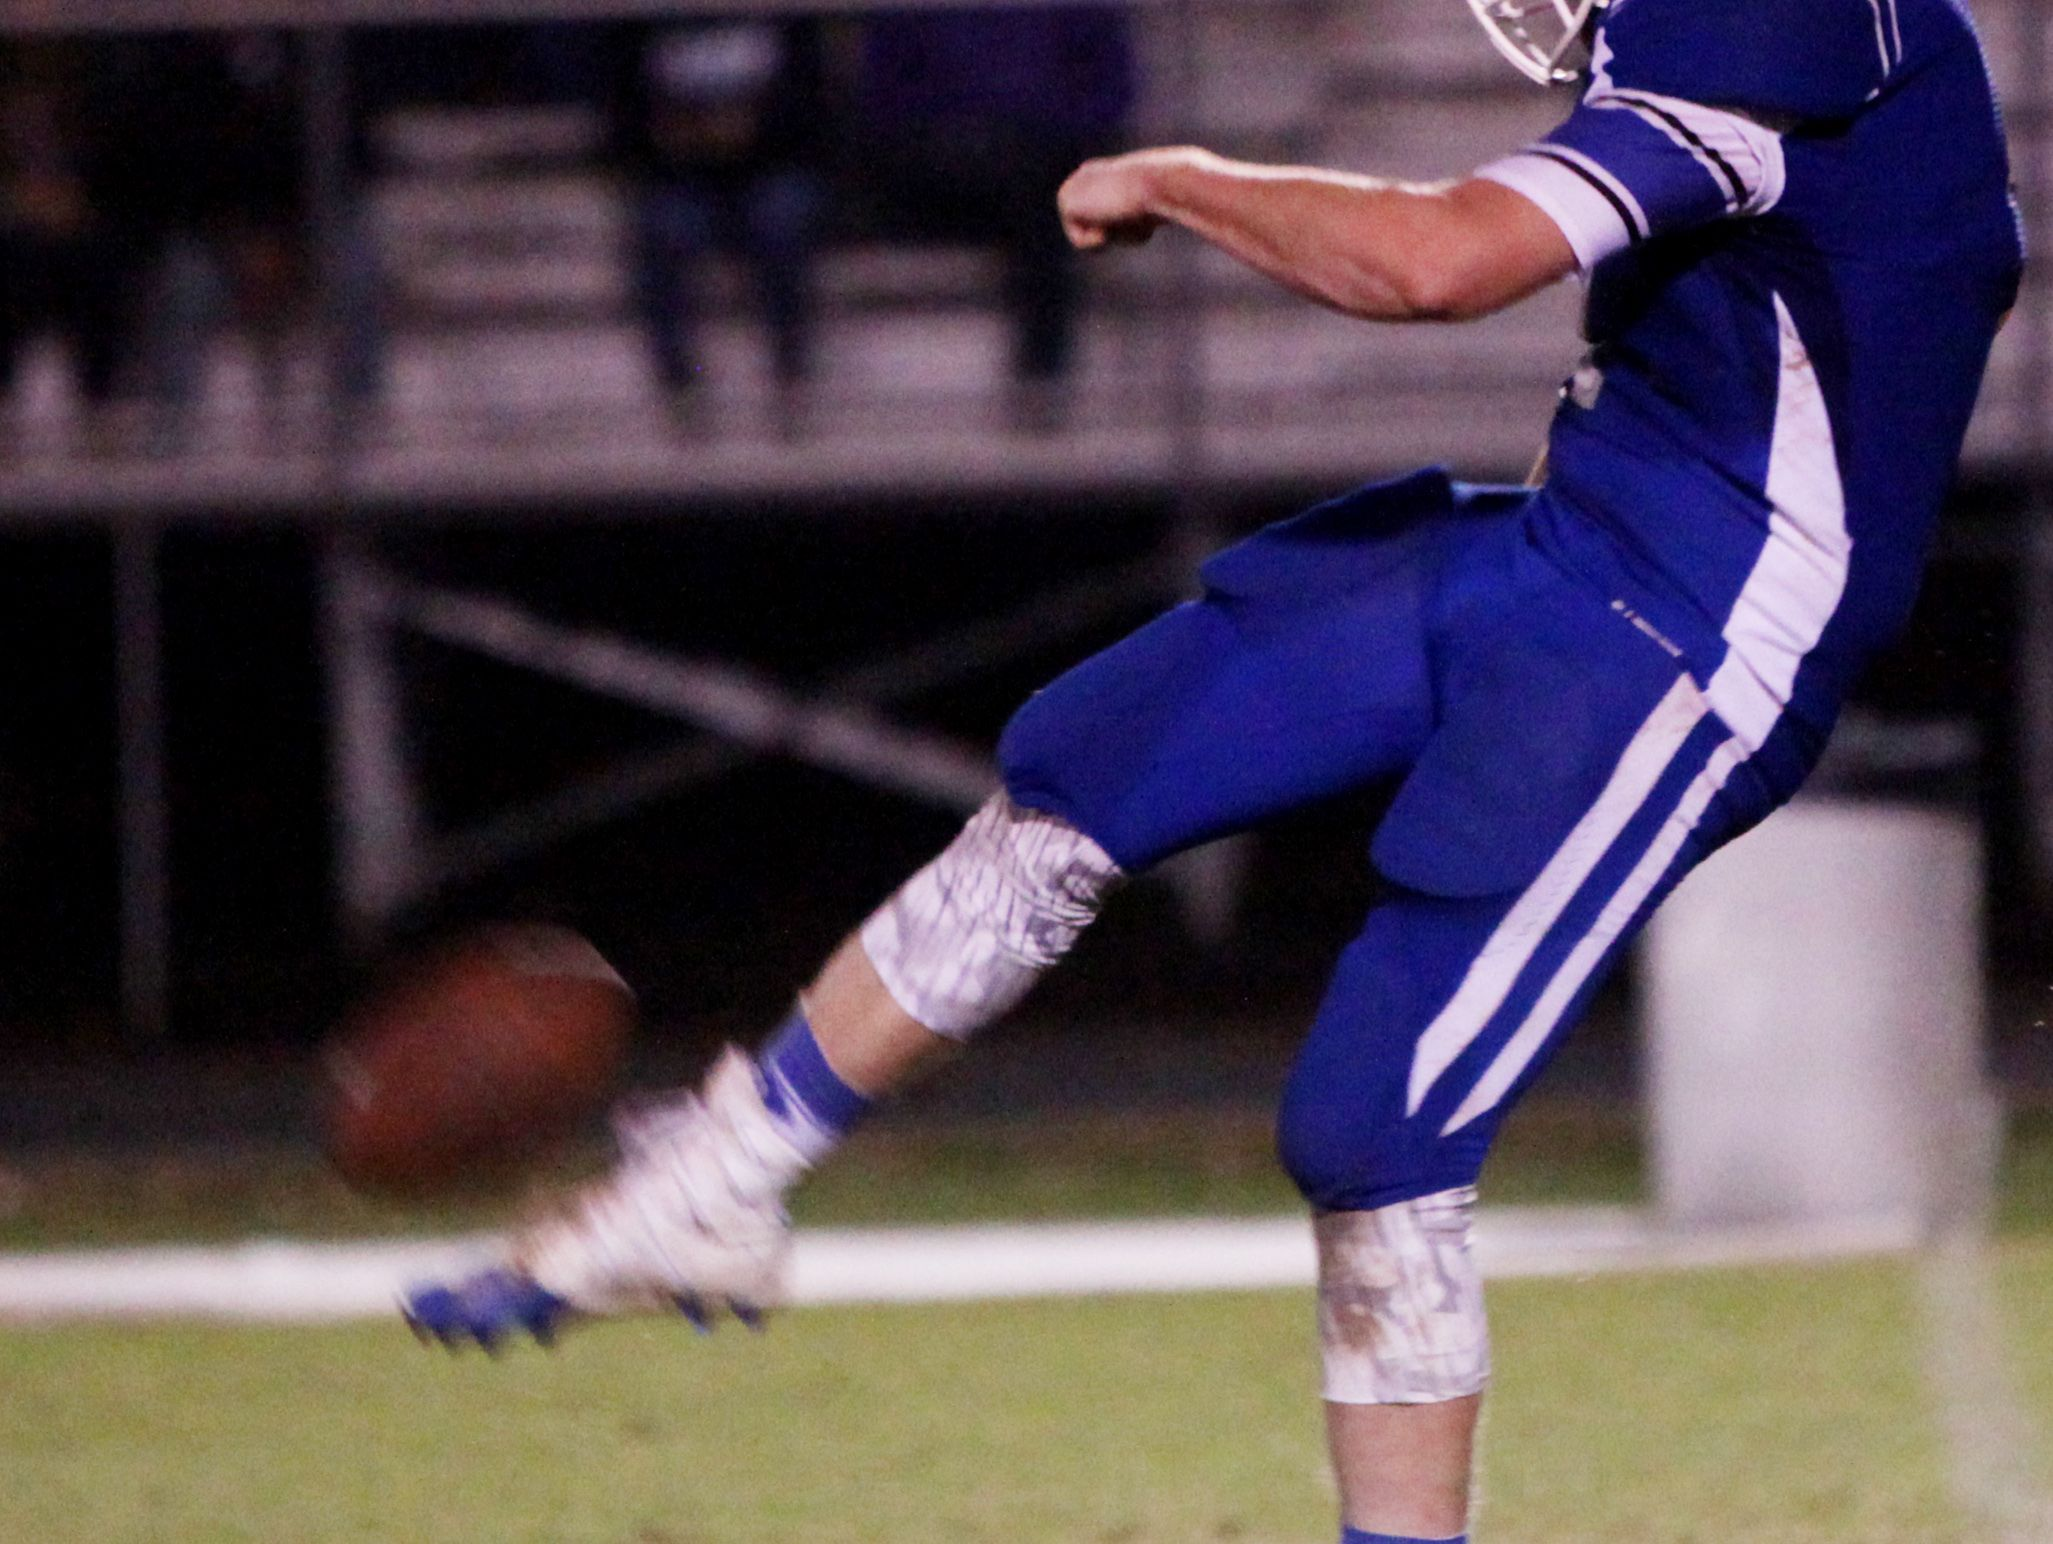 Fort Defiance's Trenton Campbell punts to Harrisonburg during the game on Friday, Oct. 21, 2016 at Fort Defiance.